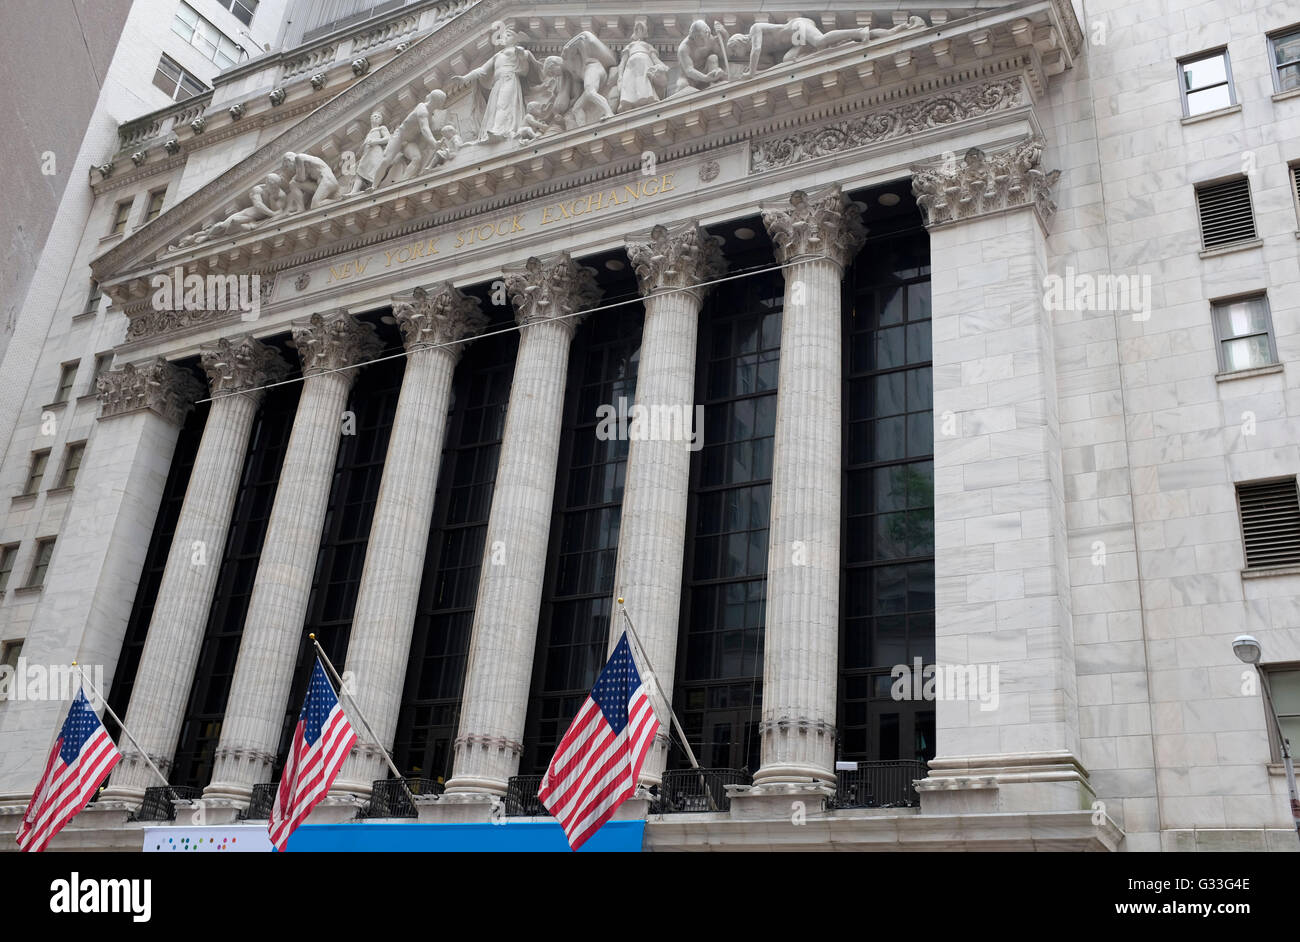 New York Stock Exchange, New York City, Stati Uniti d'America Immagini Stock